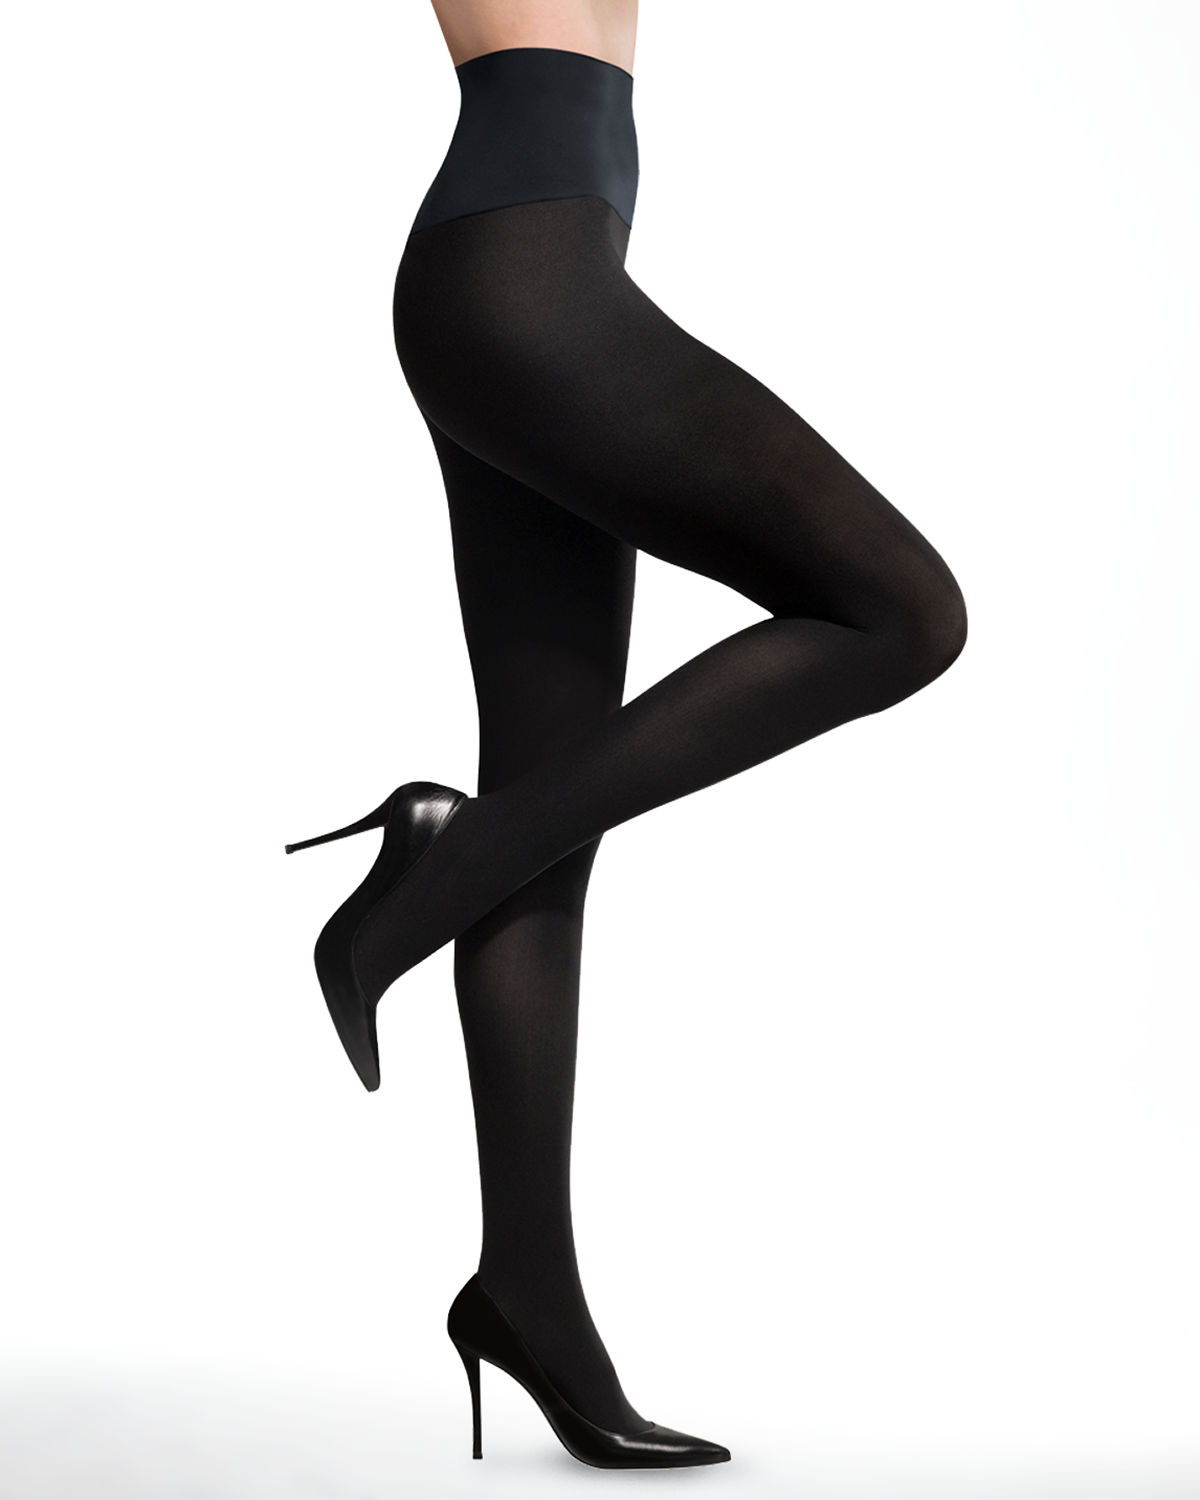 The Ultimate Opaque Tights